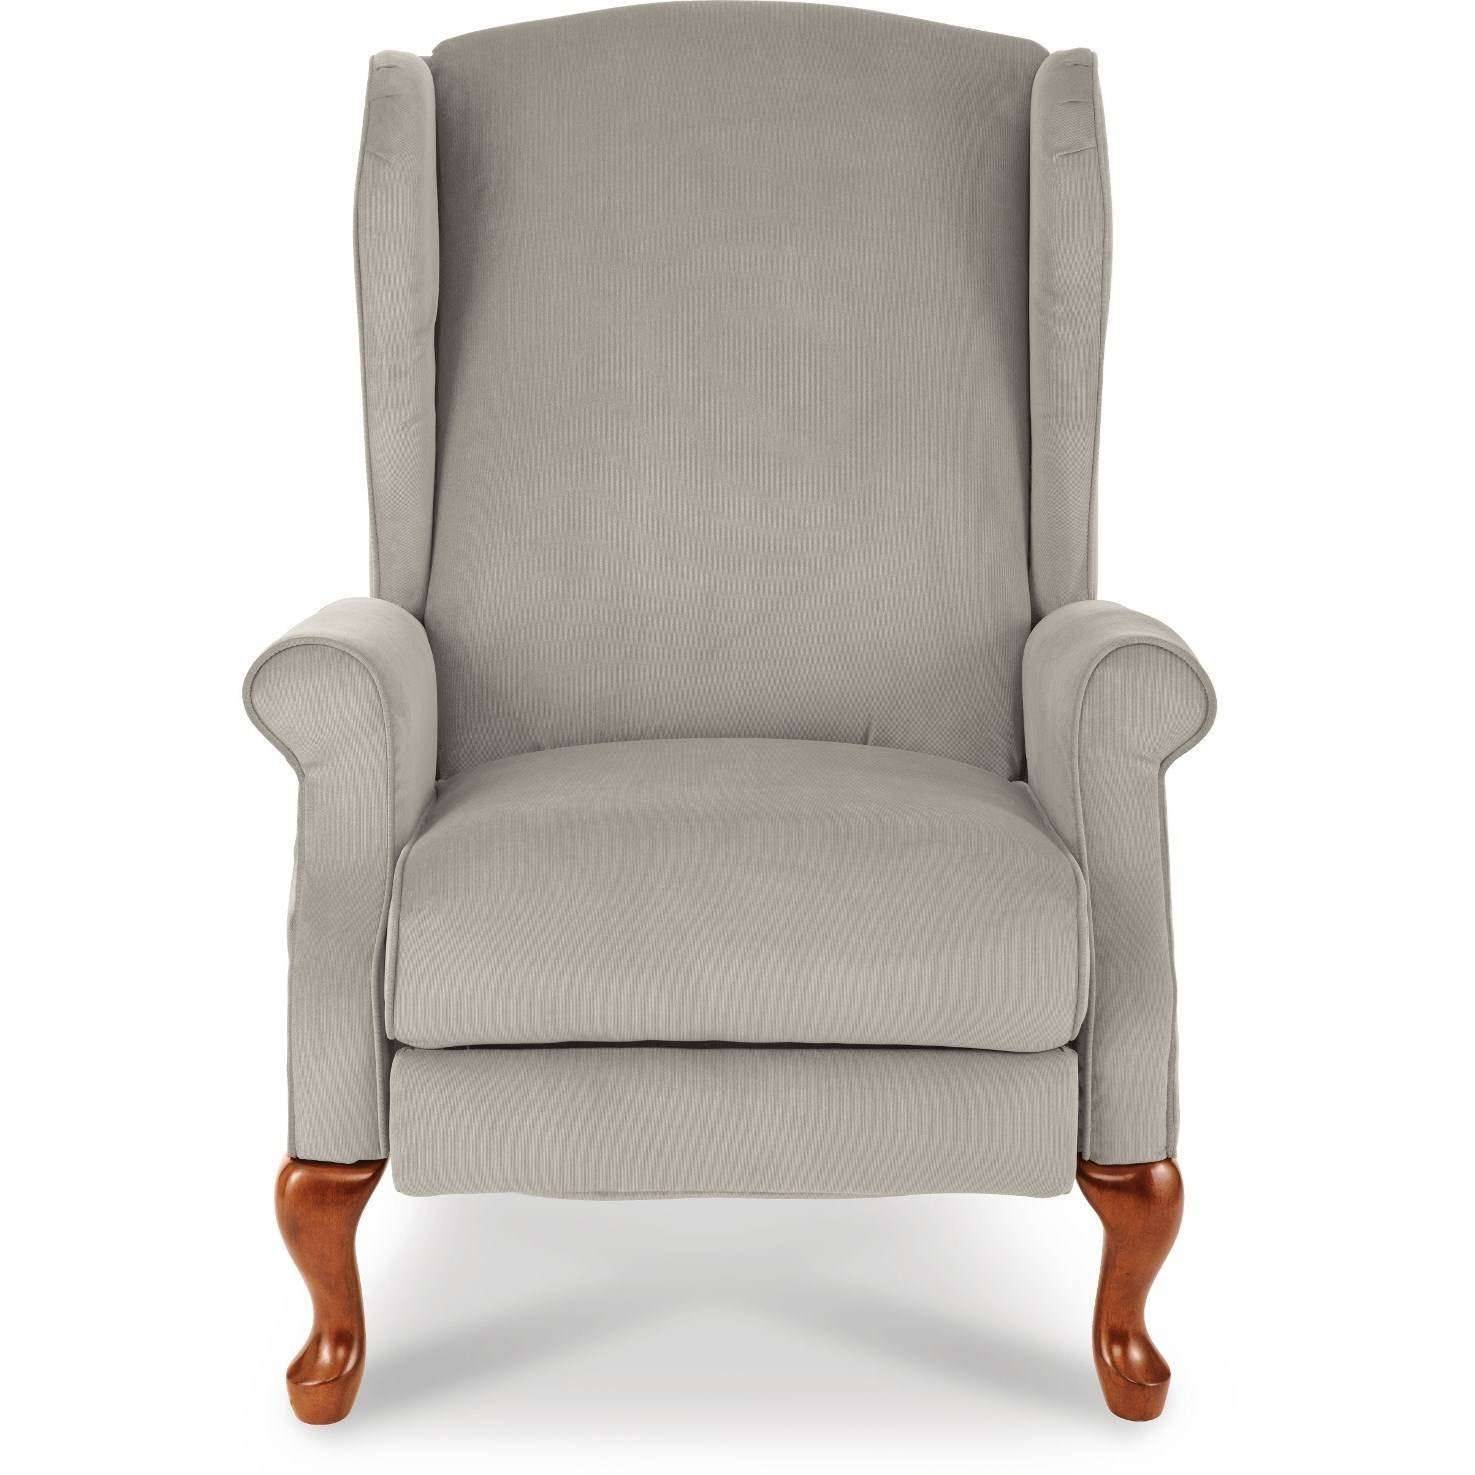 Recliners Kimberly Recliner by La-Z-Boy at Factory Direct Furniture